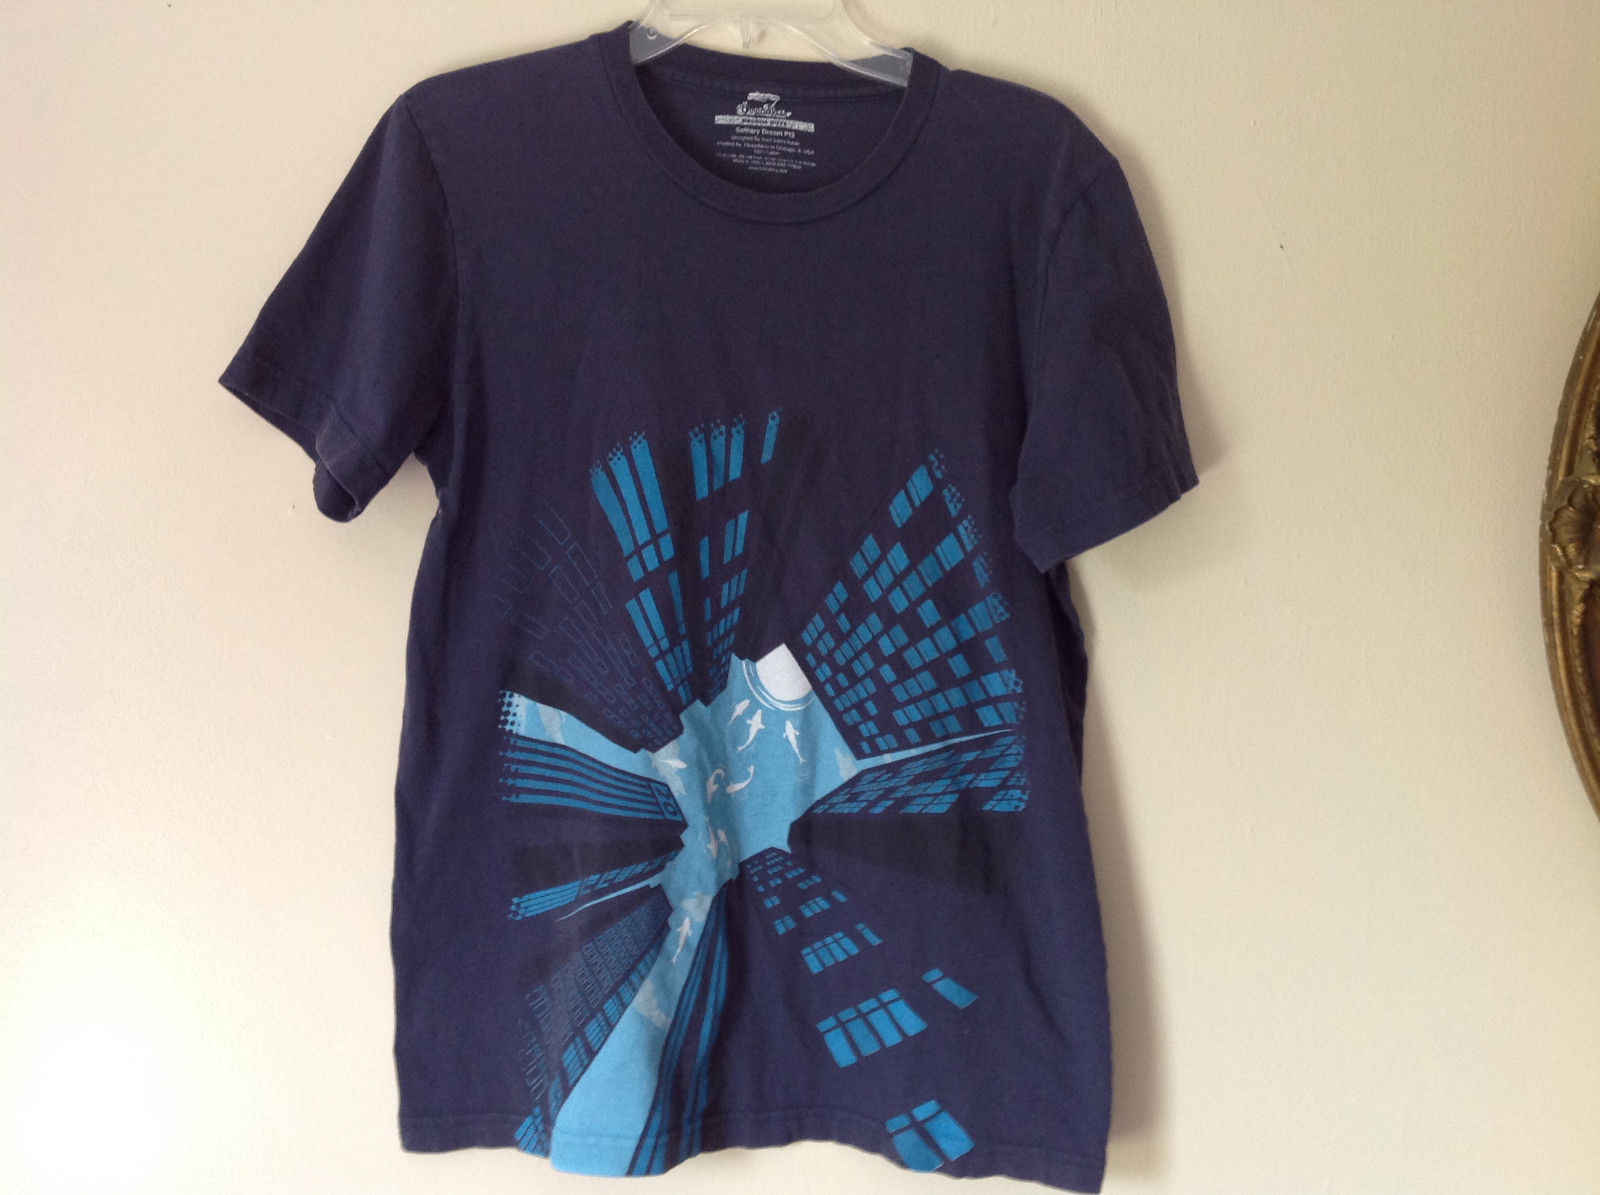 Solitary Dream Navy Blue Graphic T Shirt Light Blue Sharks Buildings Size M